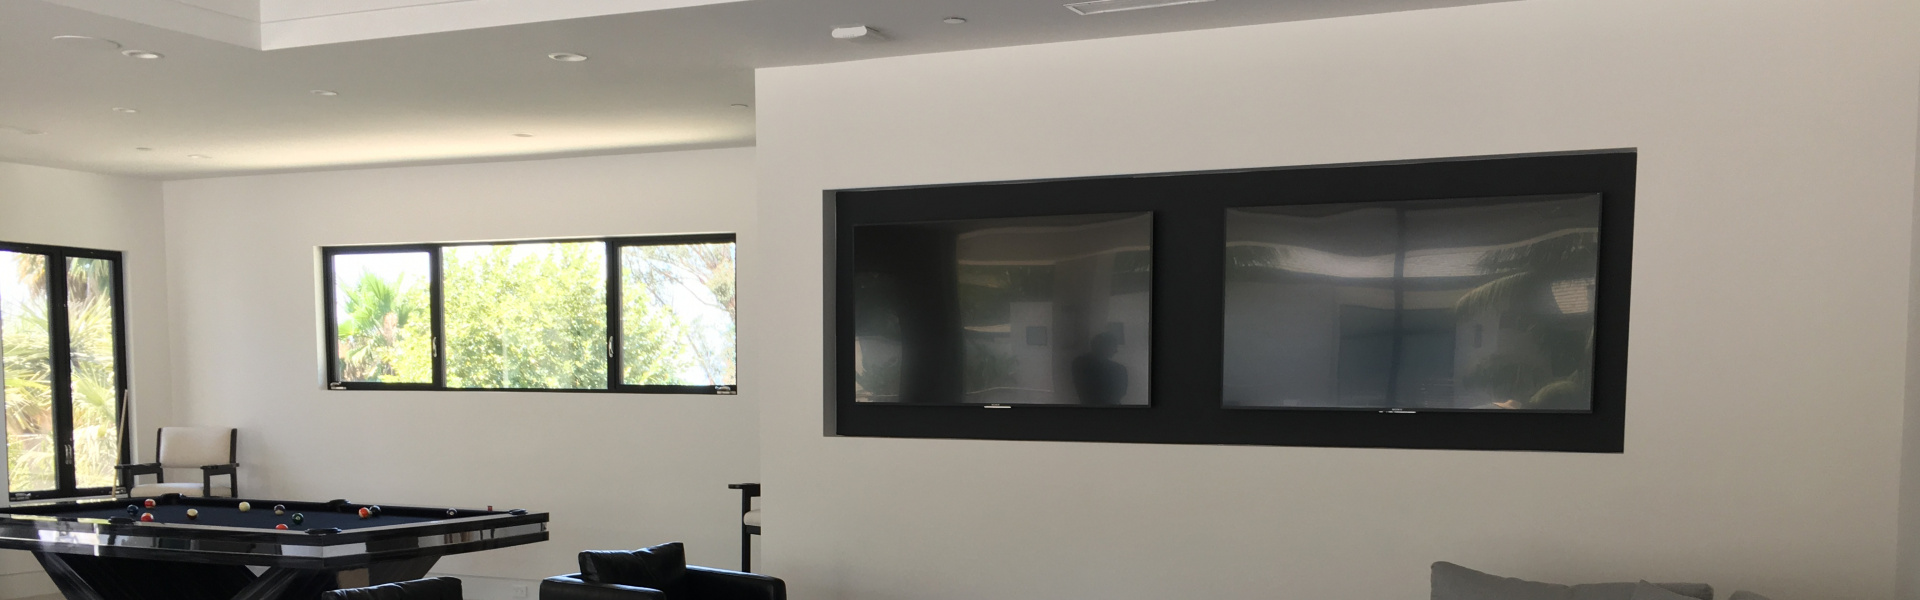 Smart home installation by Fuzion3 for Henderson